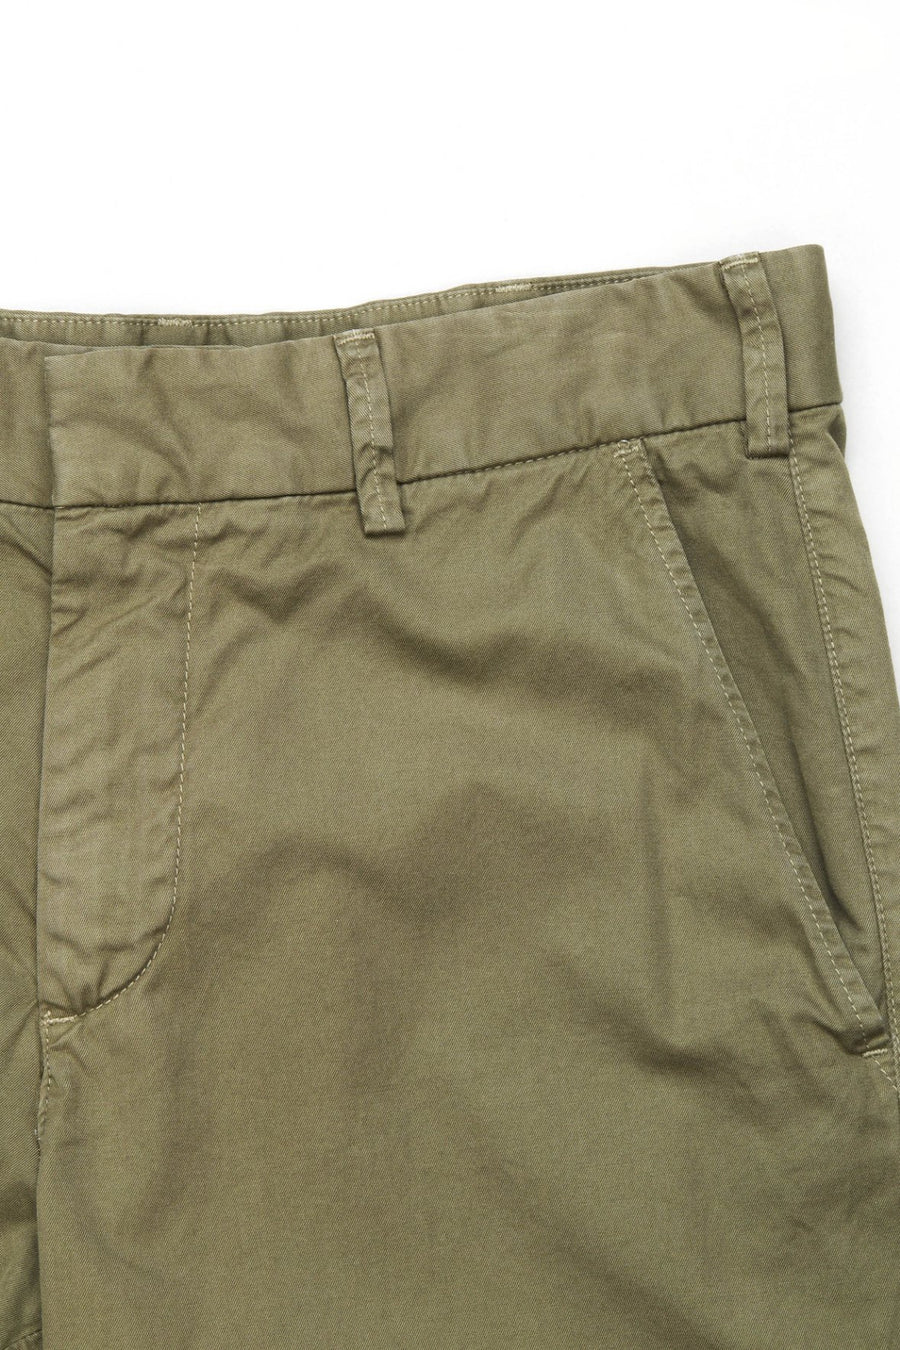 Save Khaki Light Twill Trouser